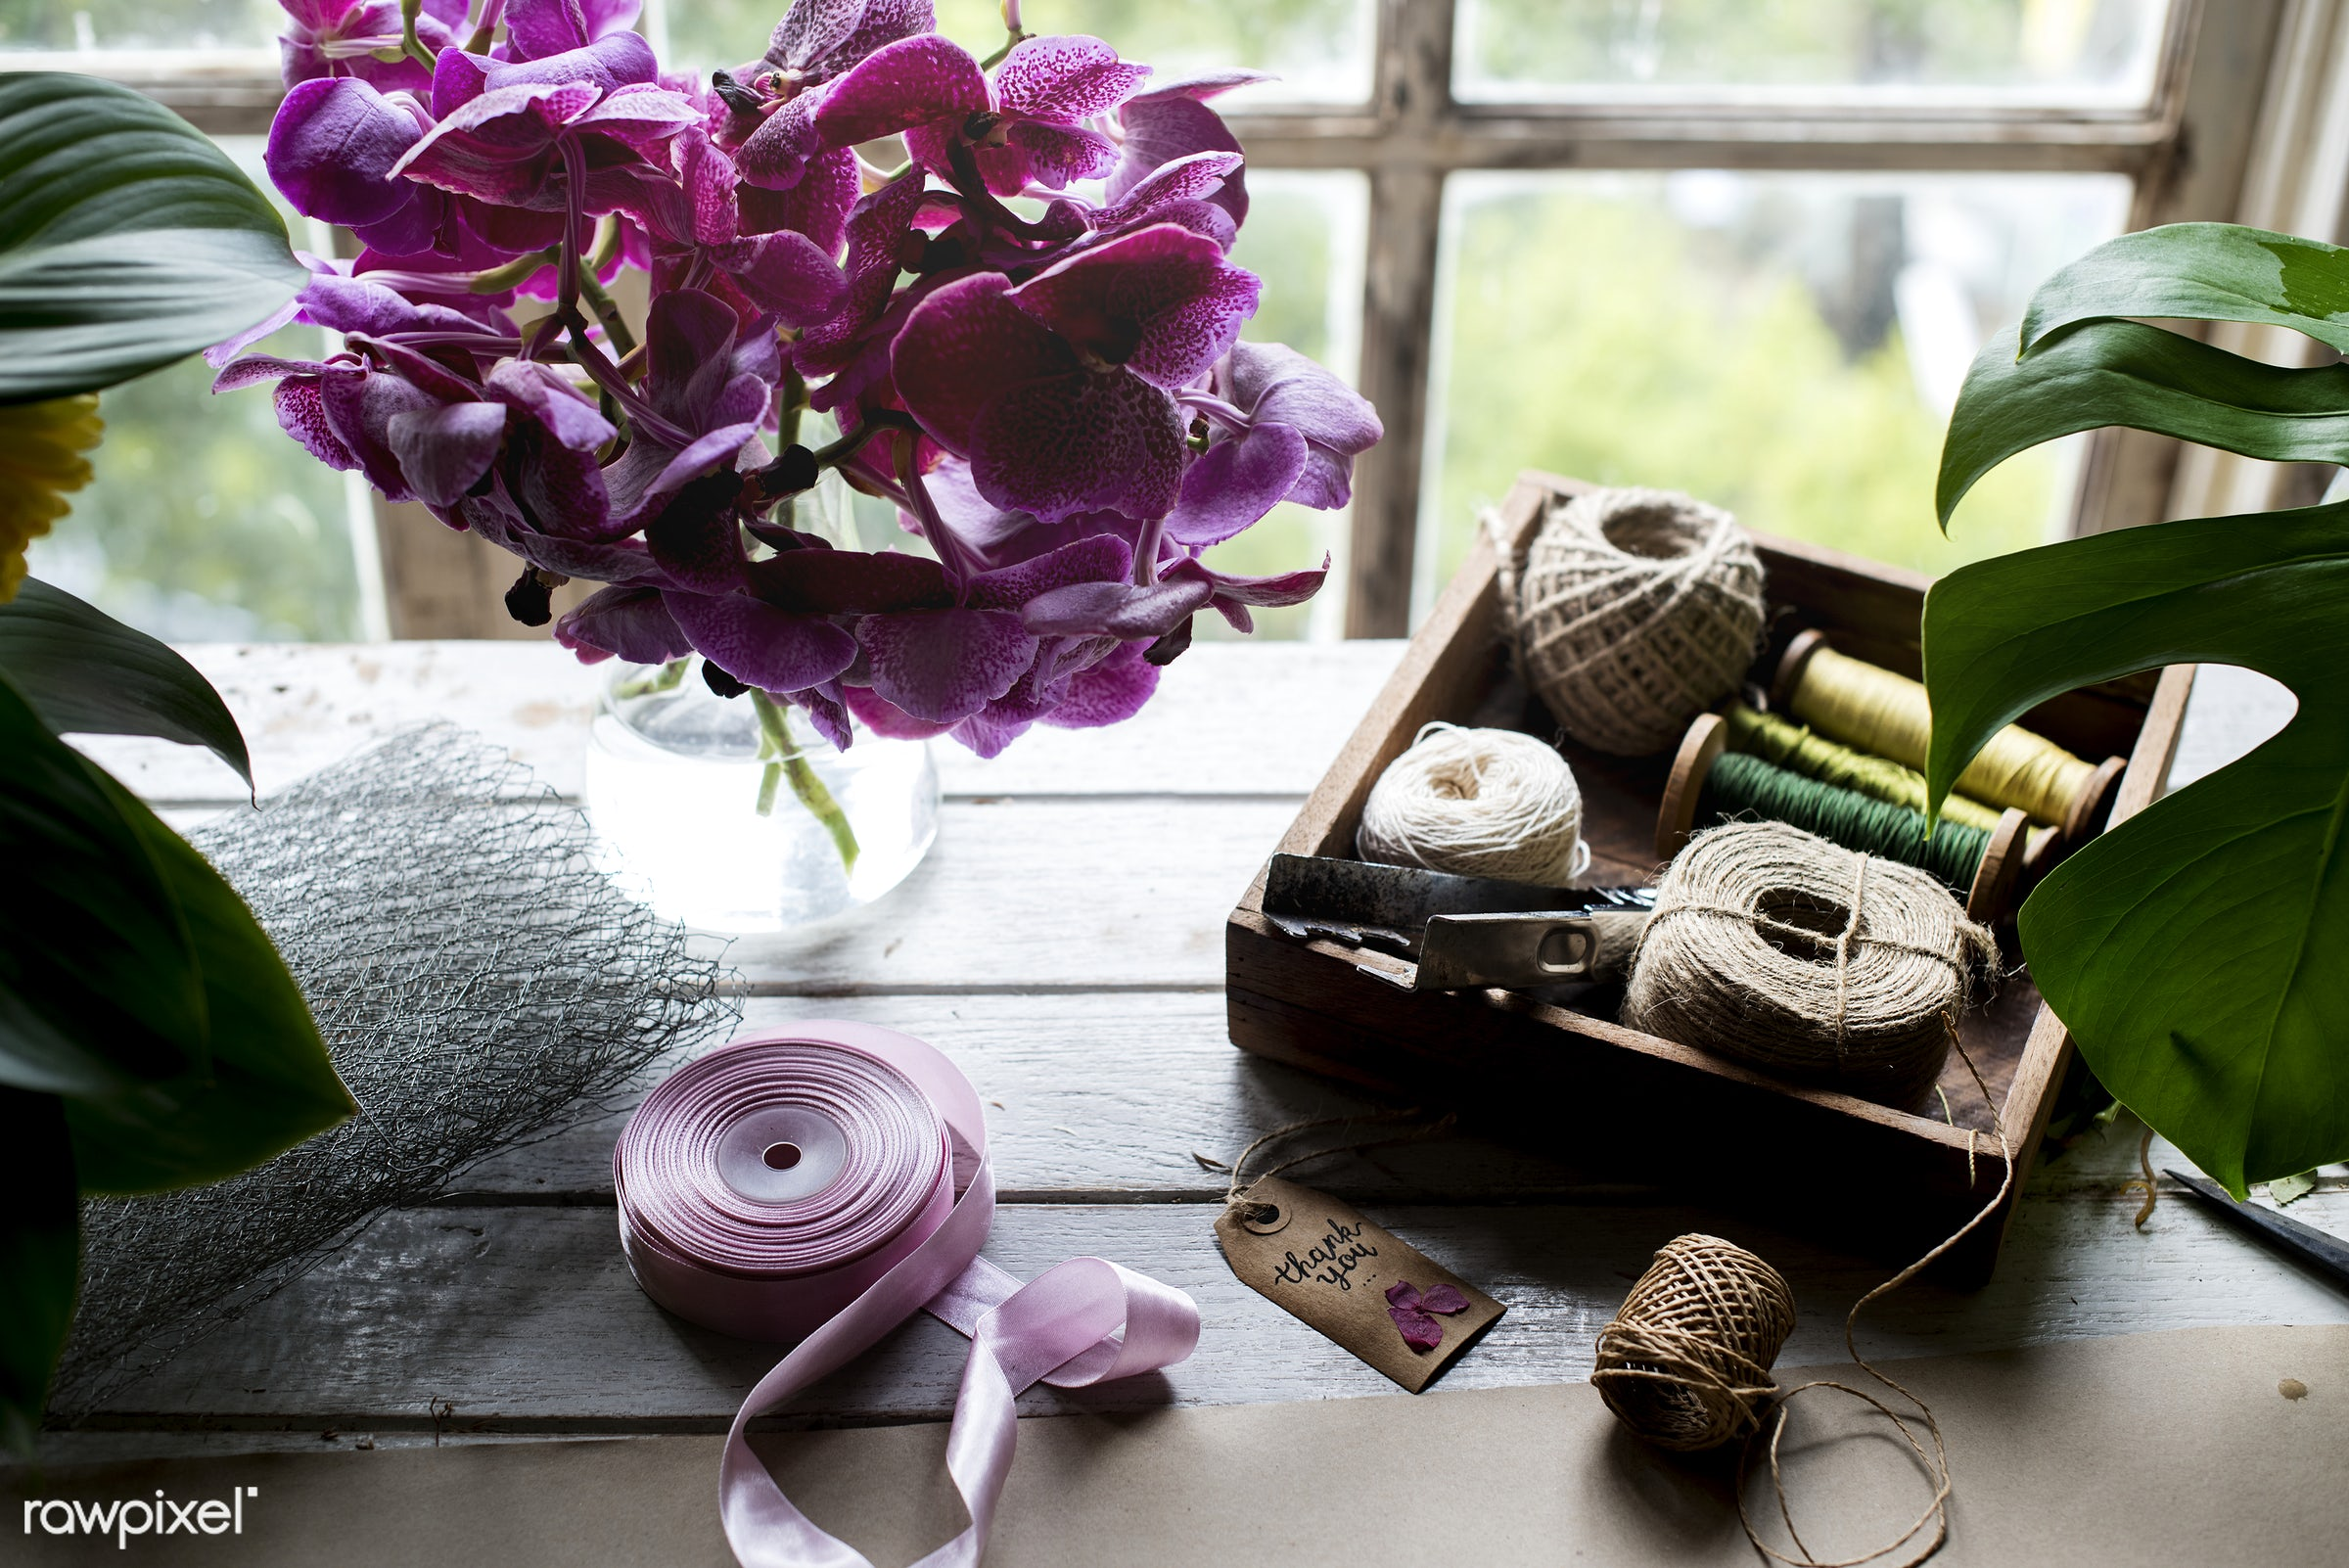 Workspace for diy projects - nobody, ornate, tag, leaves, diy, accessory, ribbon, thread, flower, purple, romantic, handmade...